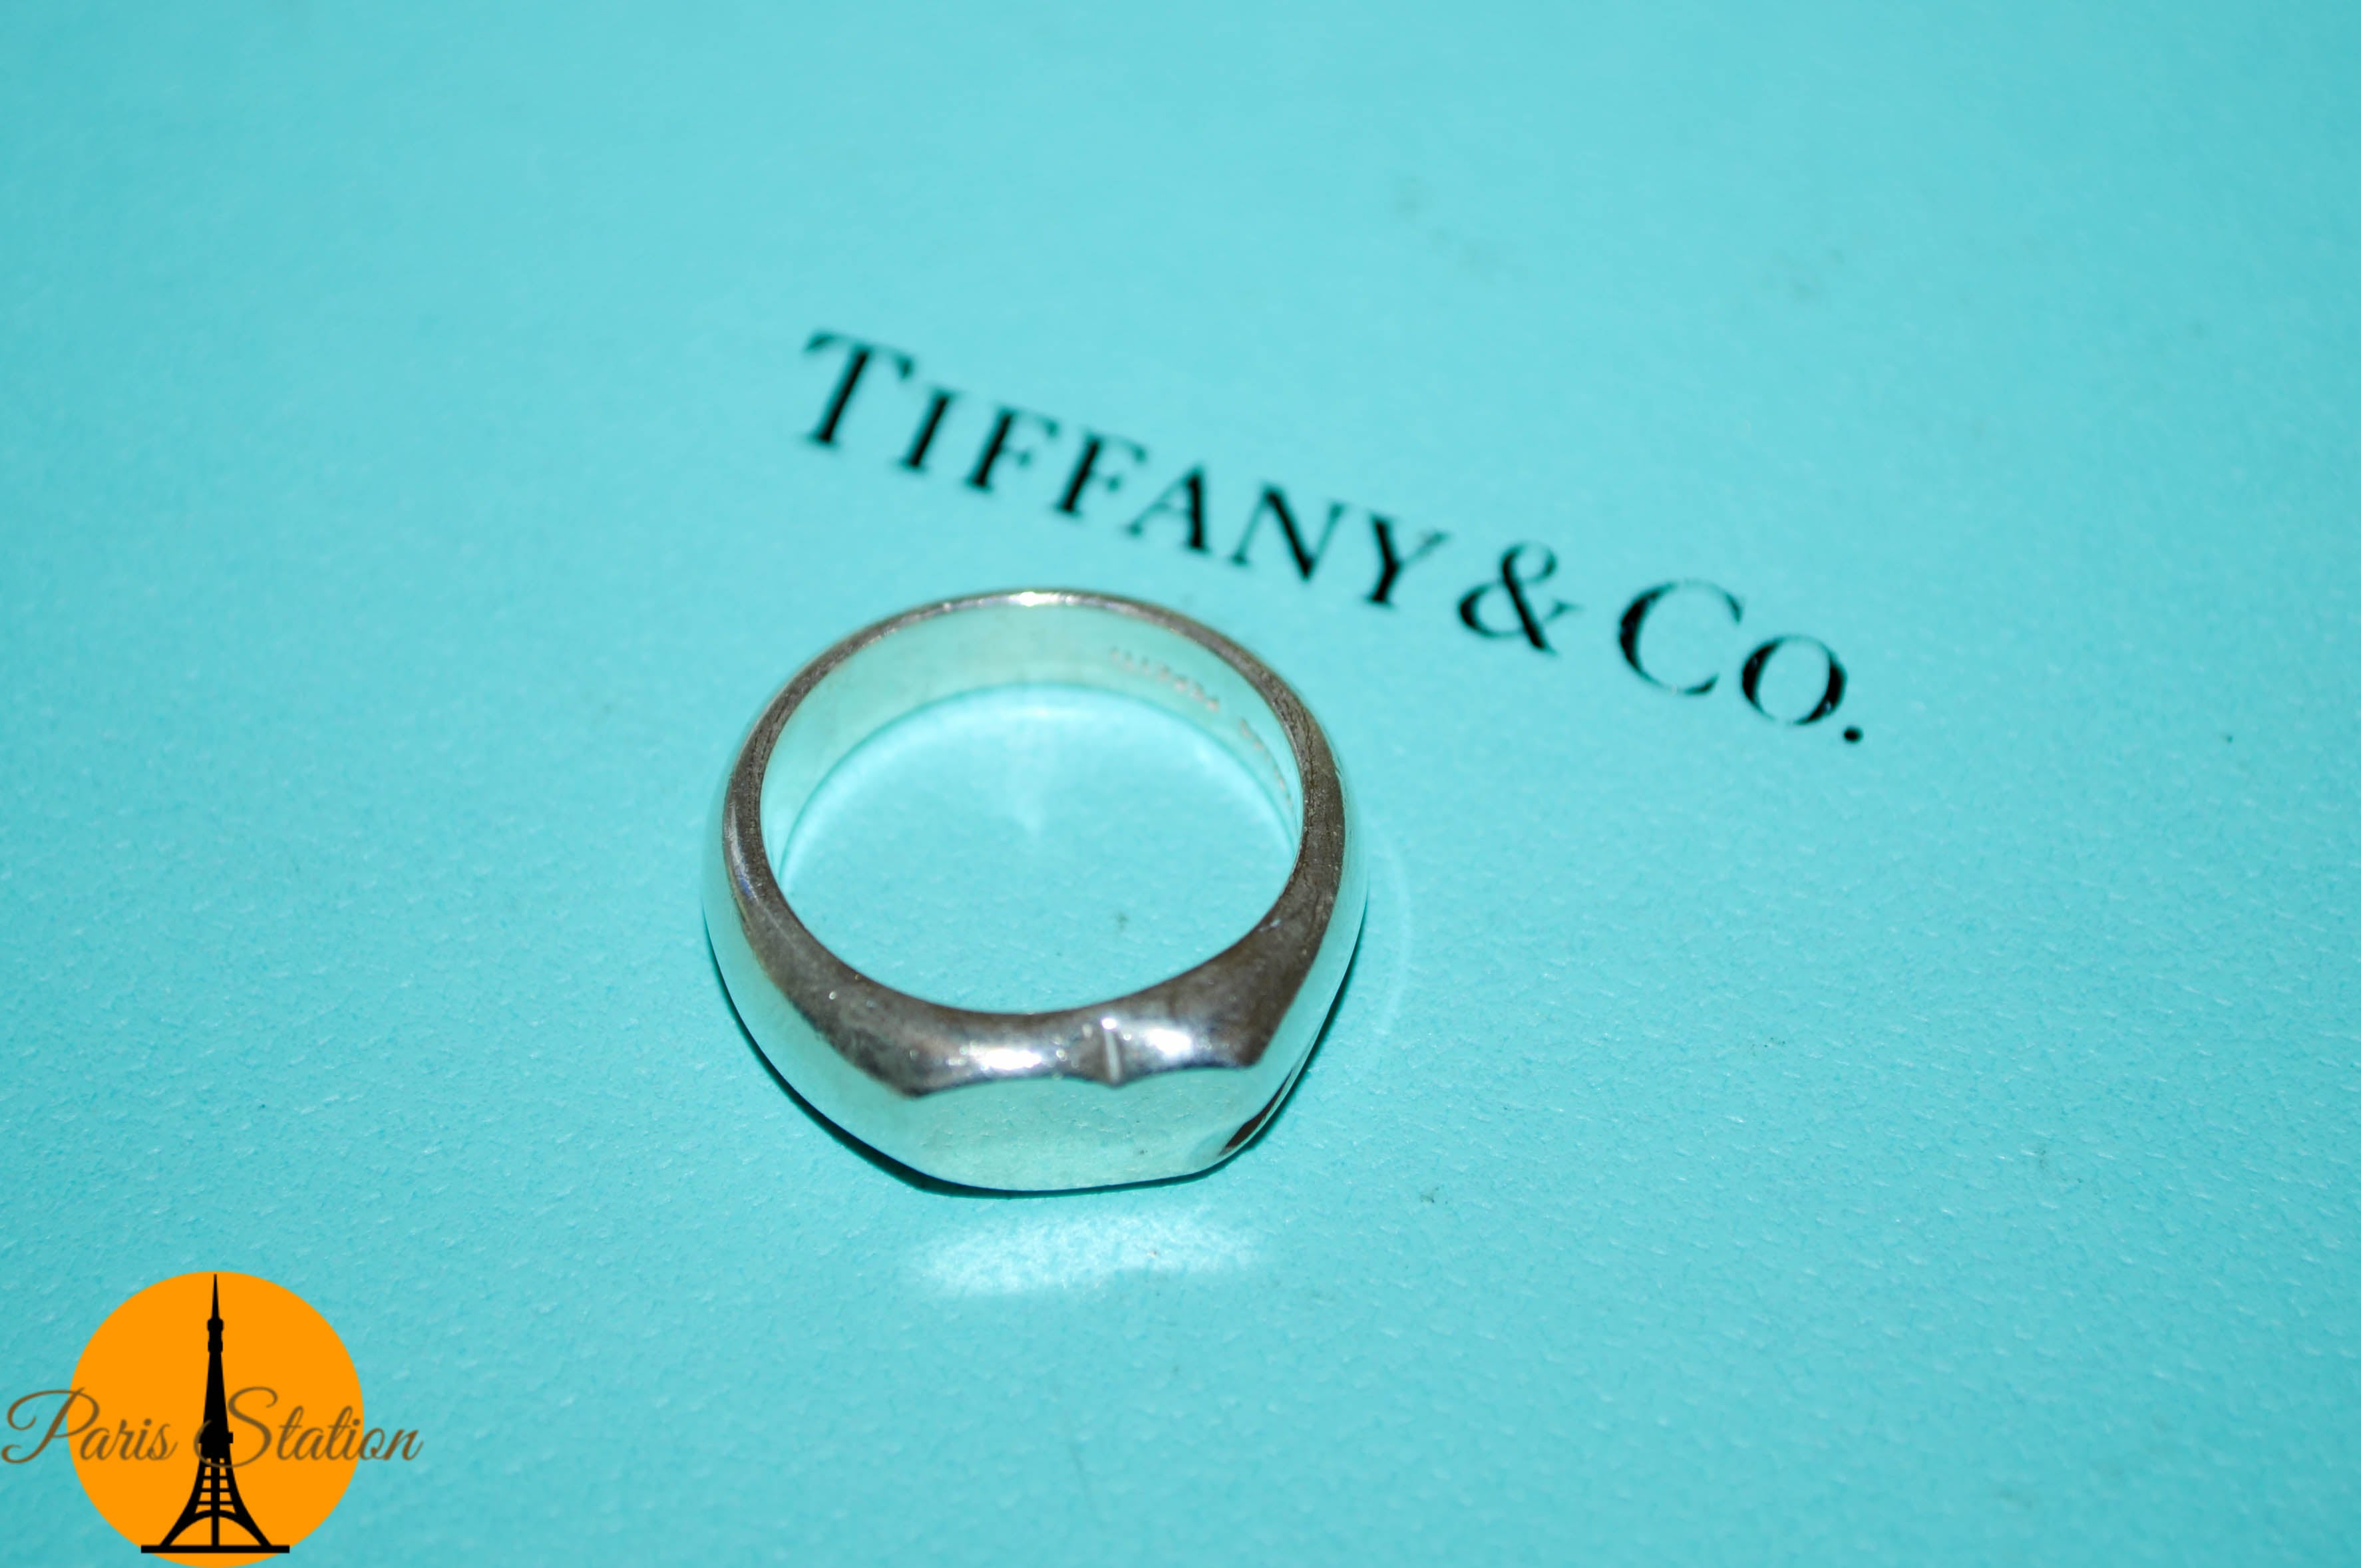 Authentic Tiffany & Co. Solid Heart Sterling Silver Ring 4.5